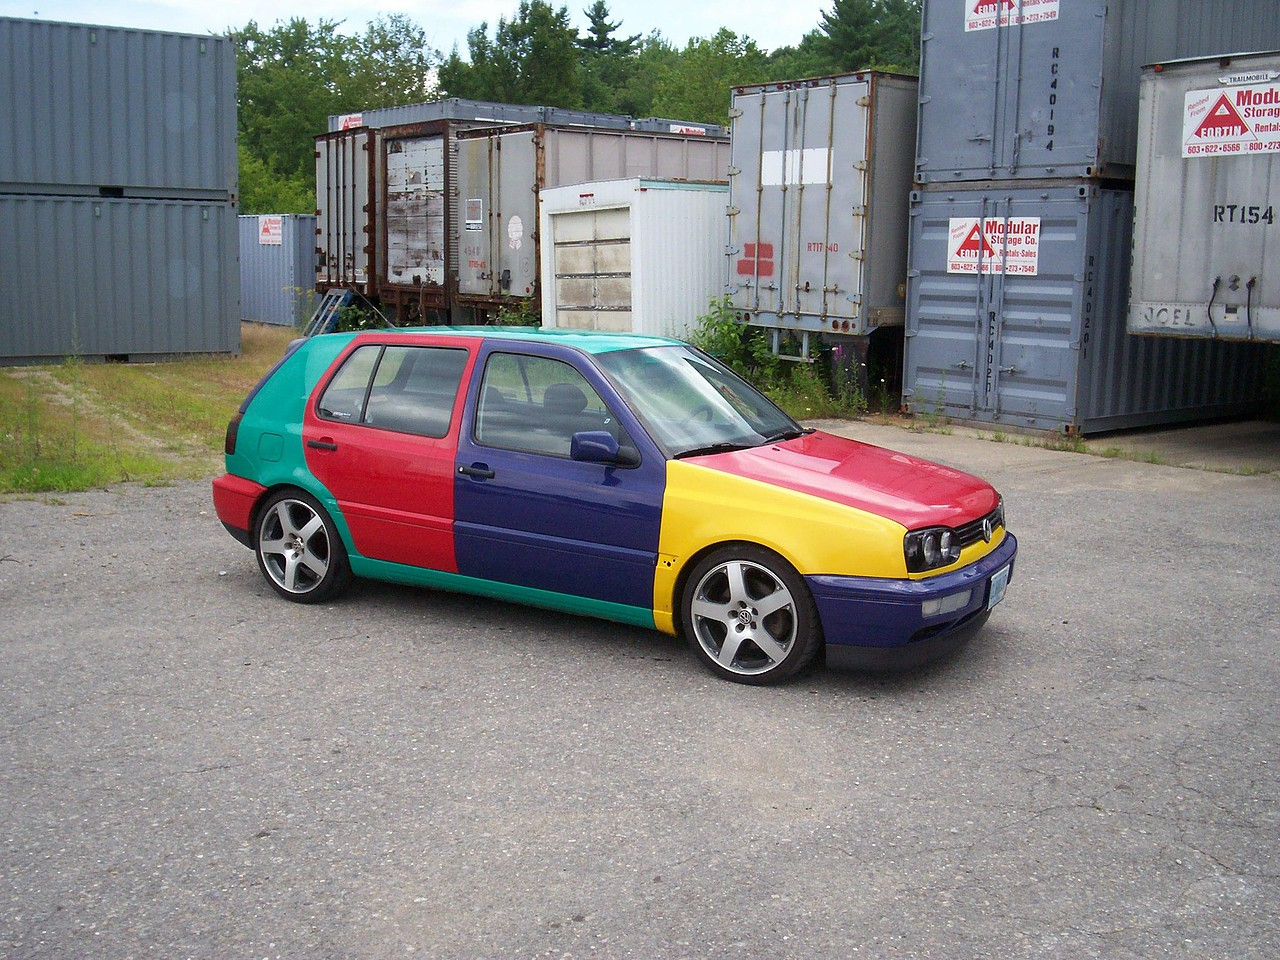 1996 VW Golf Harlequin